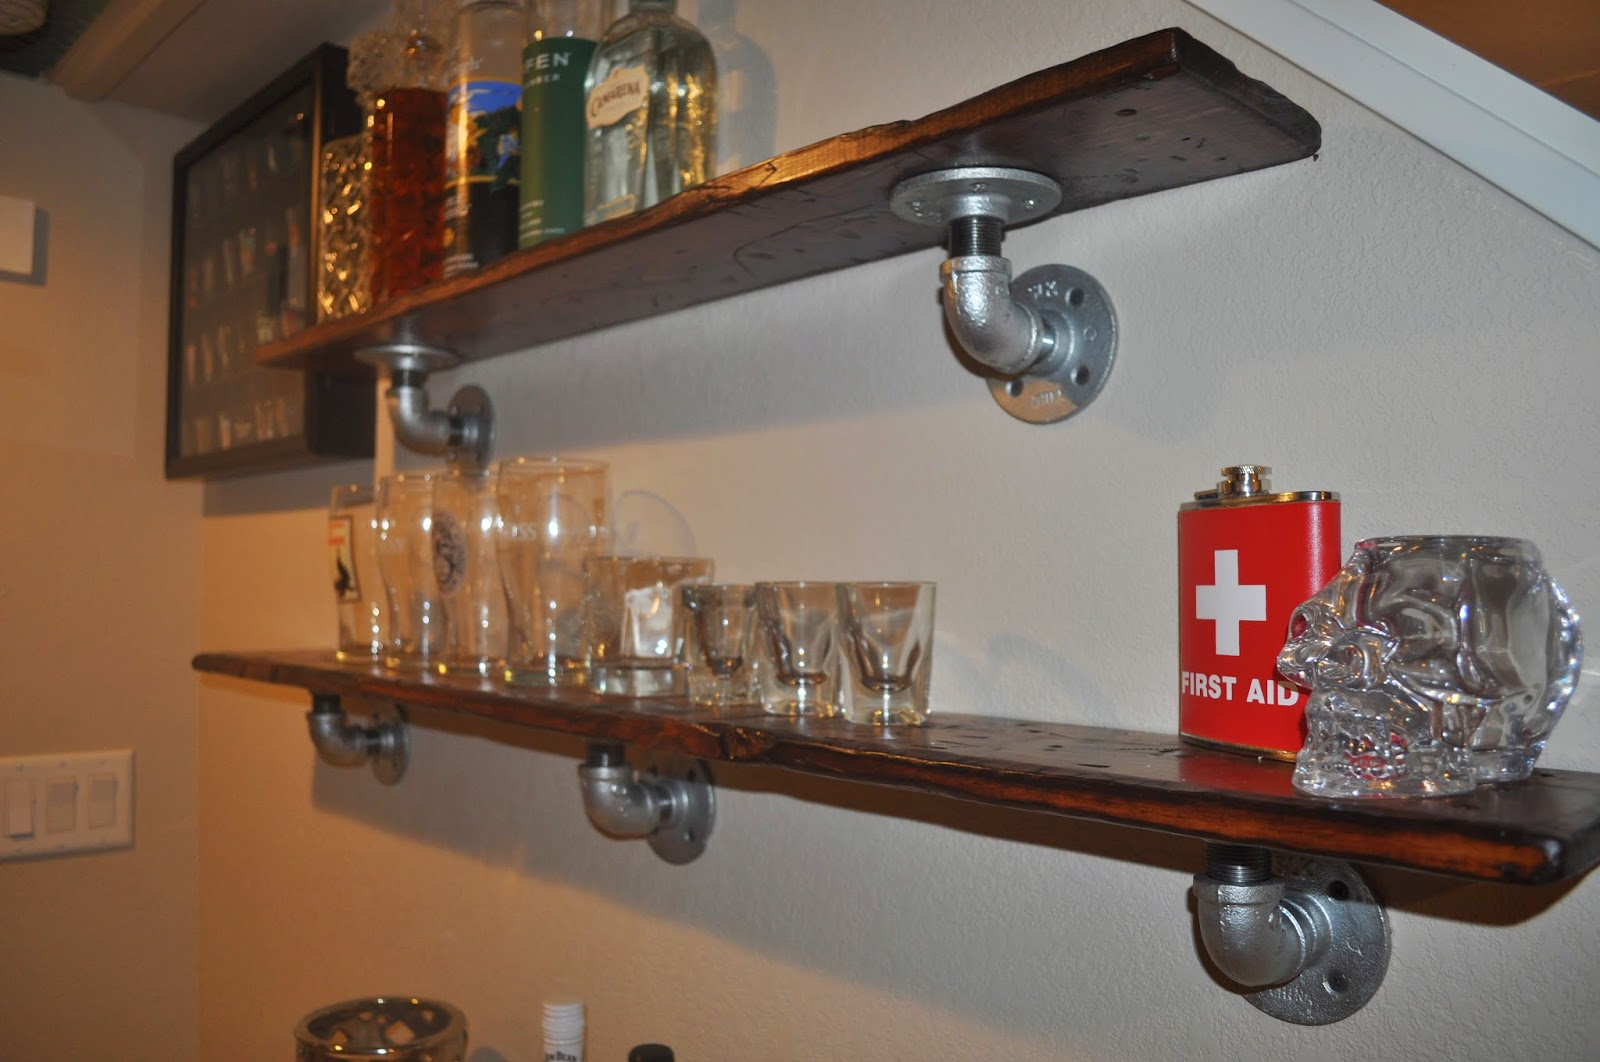 stress relief, diy, distressed, boards, basement, bar, basement bar, decor, diy shelving, shelving, industrial